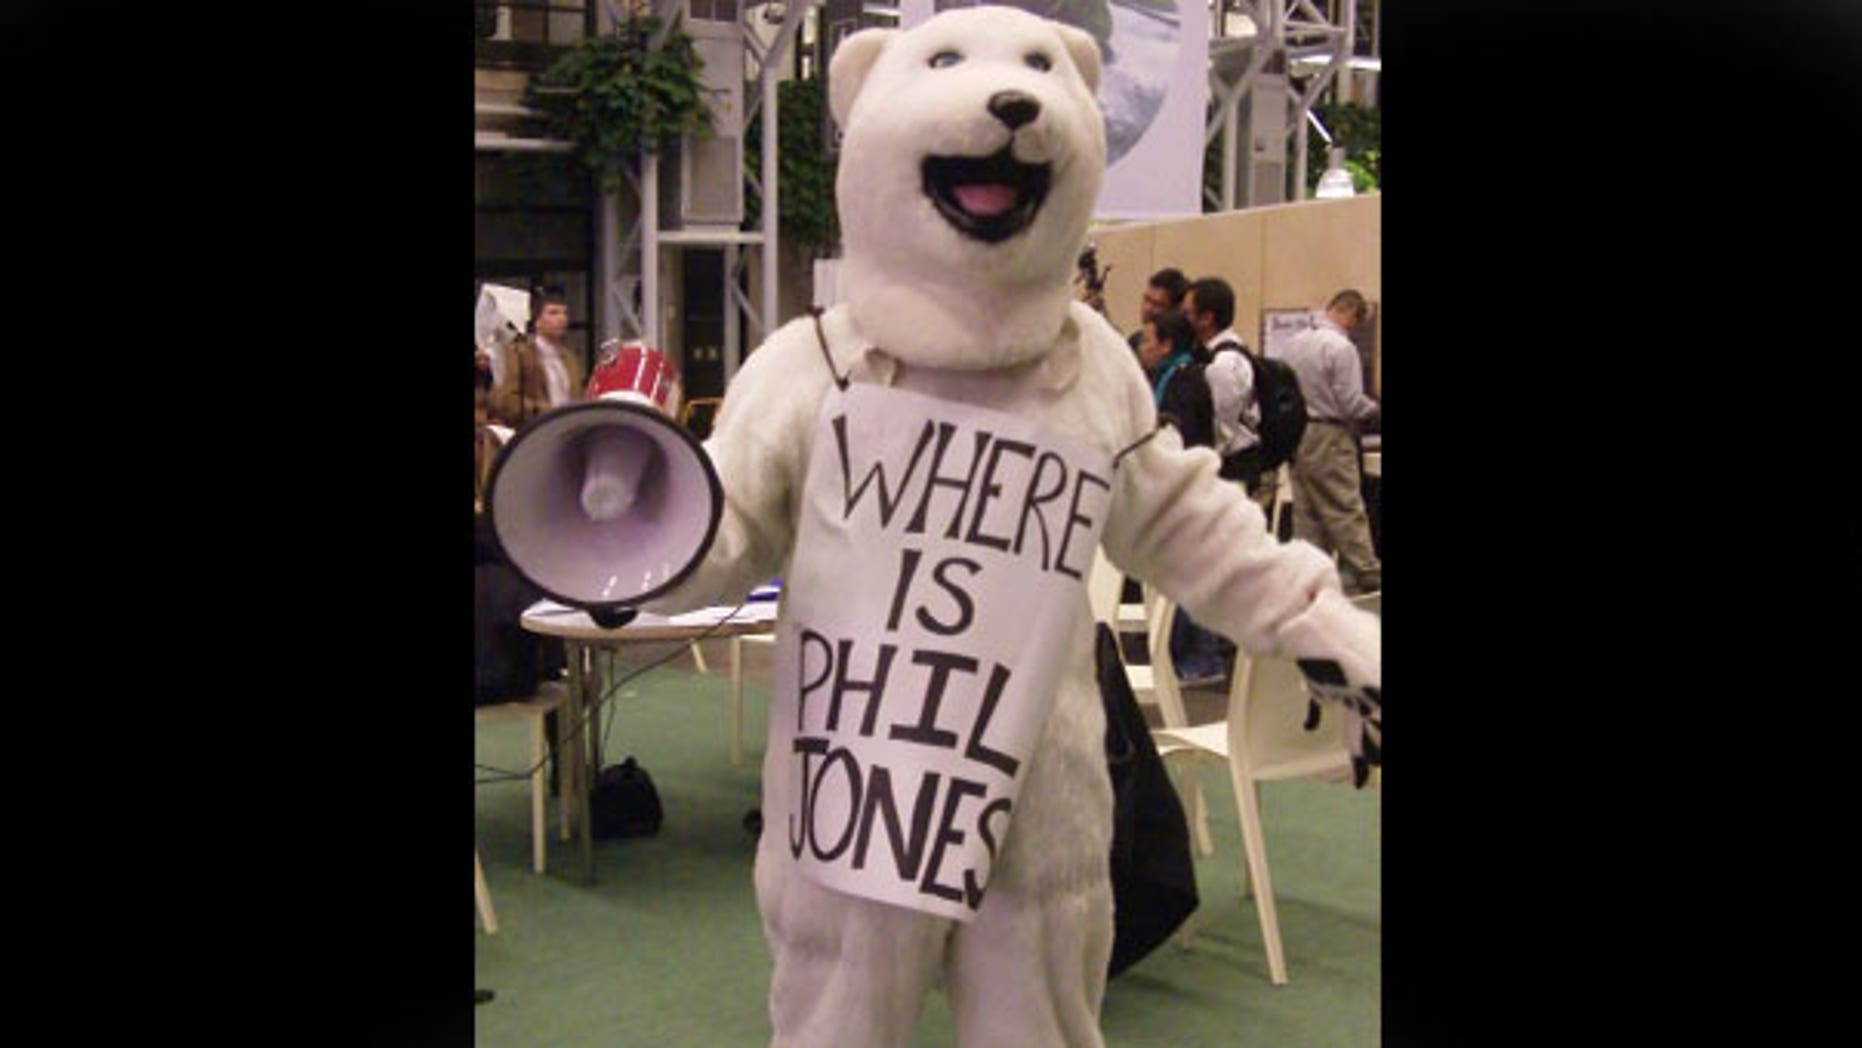 A man in a bear costume at the Copenhagen Climate Summit went hunting for Phil Jones, the scientist at the heart of the Climate-gate scandal.